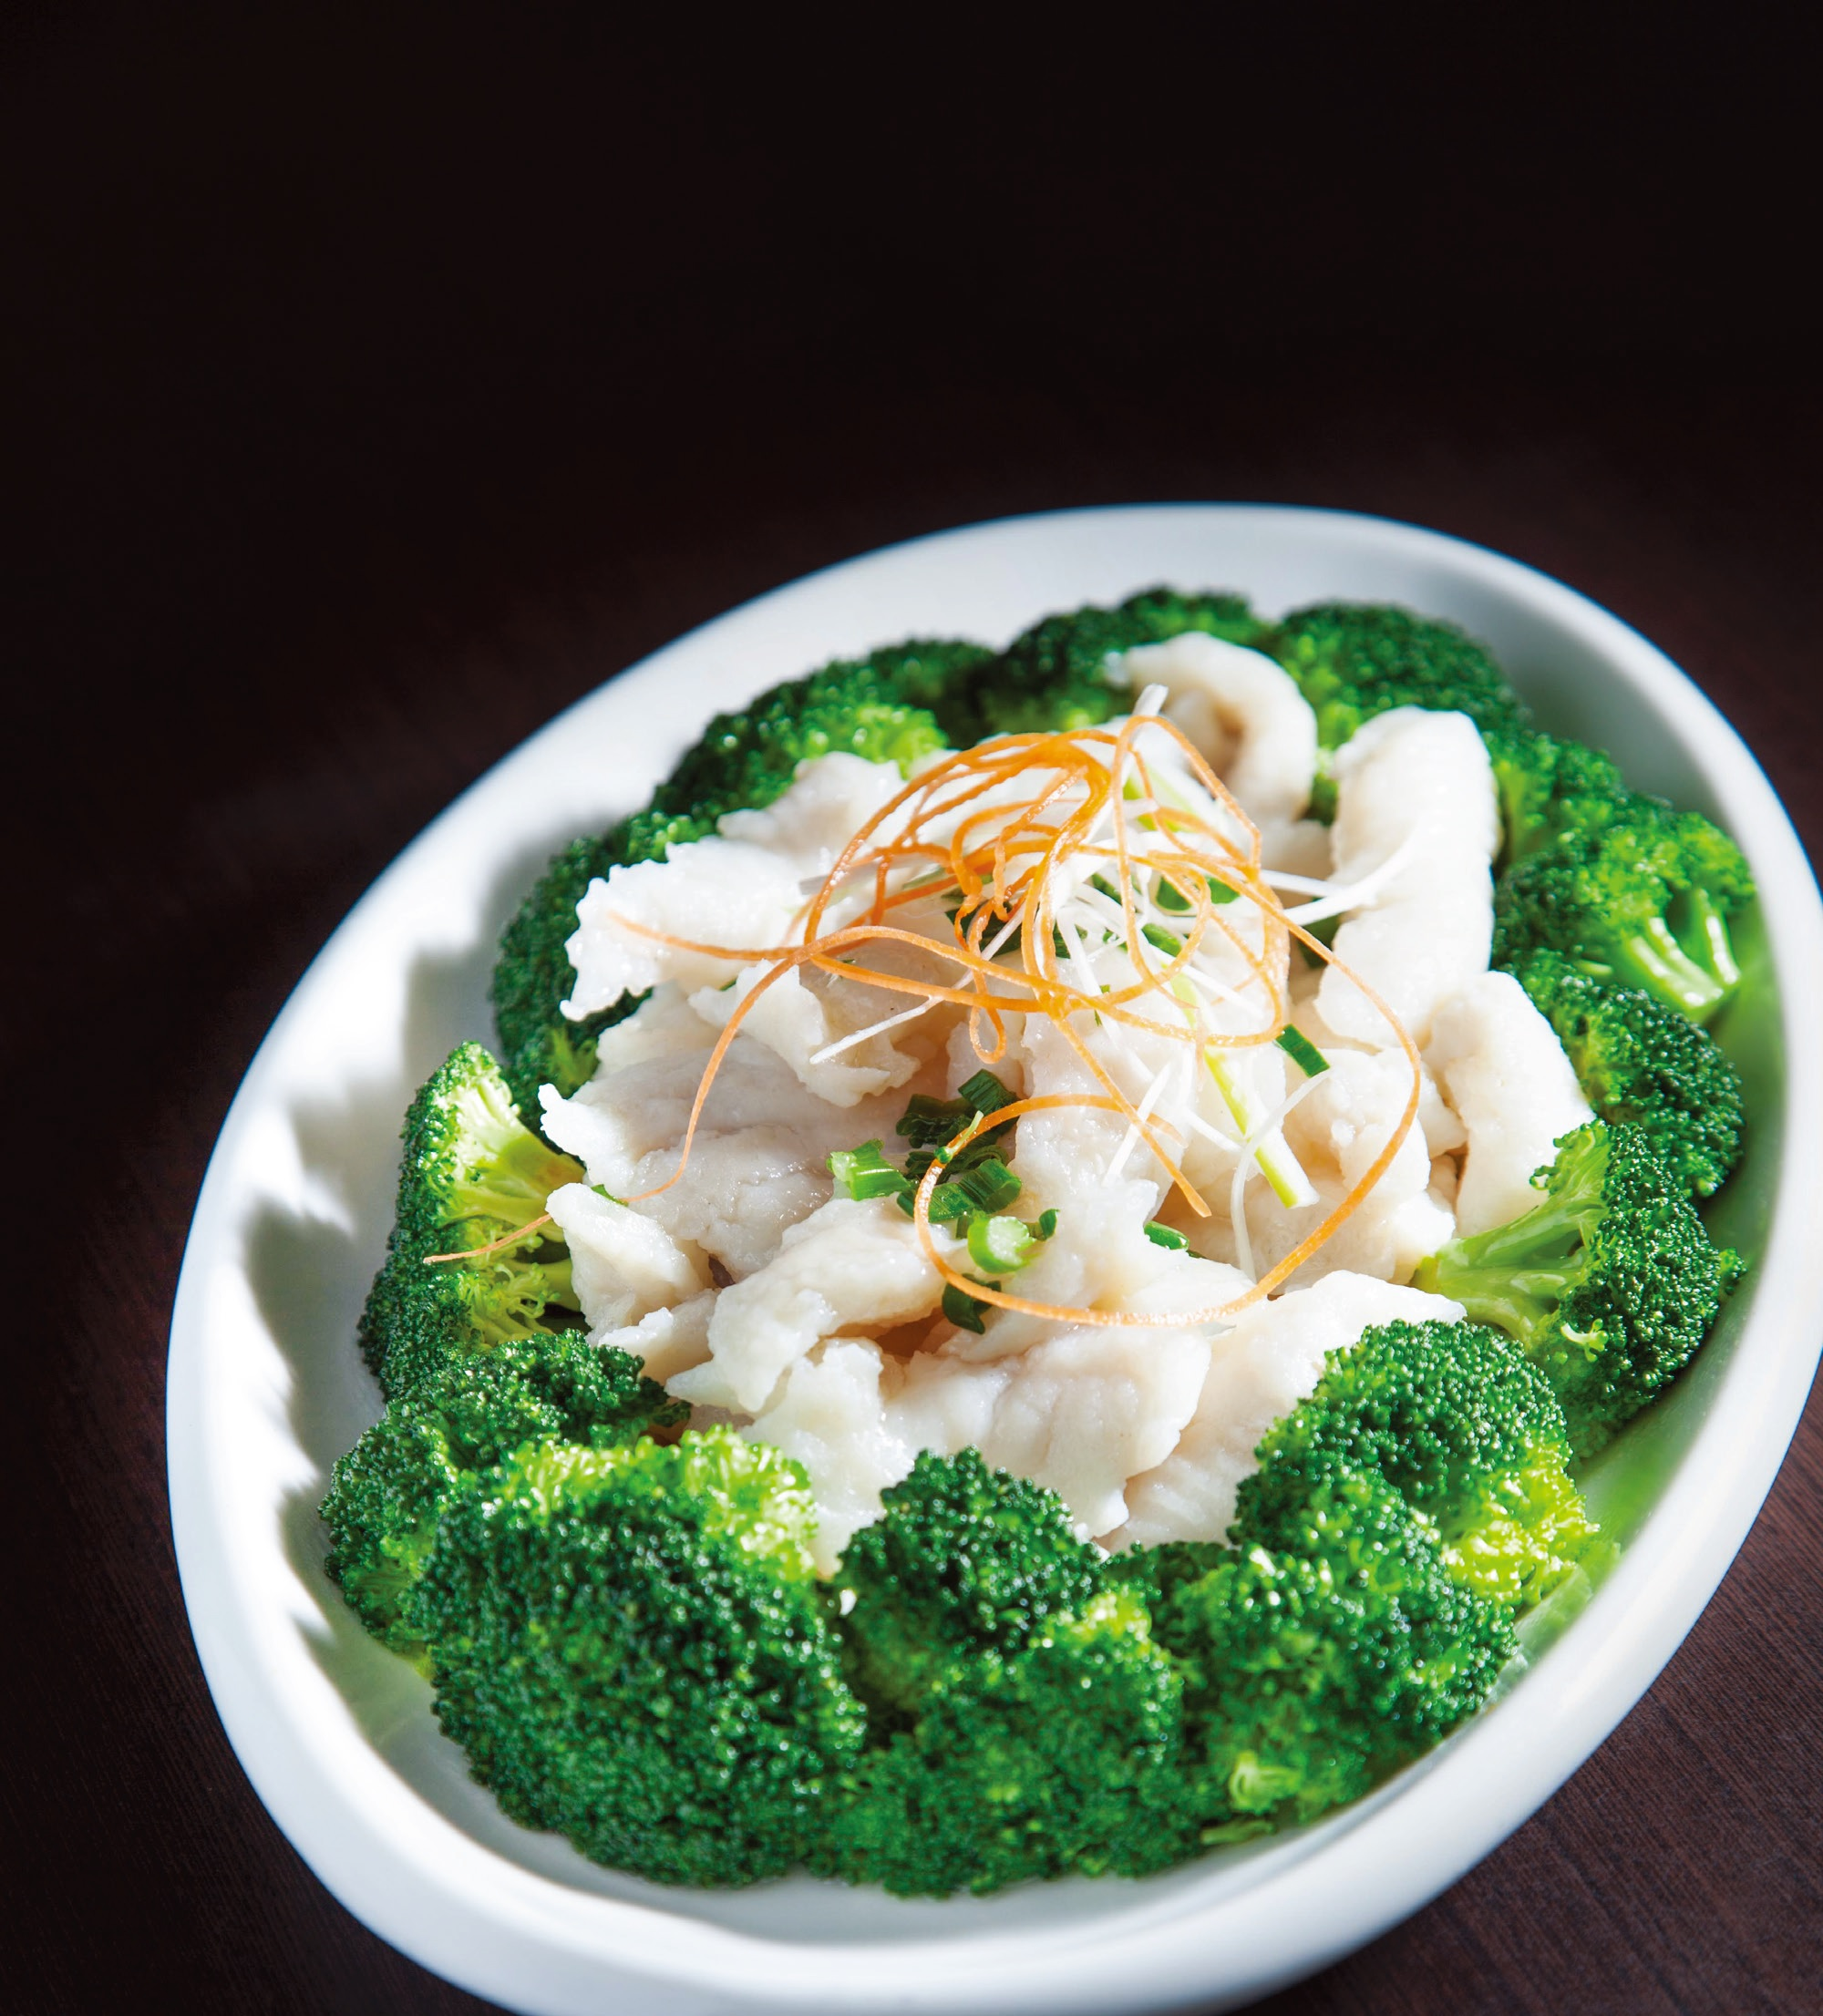 Poached basa fillet with broccoli